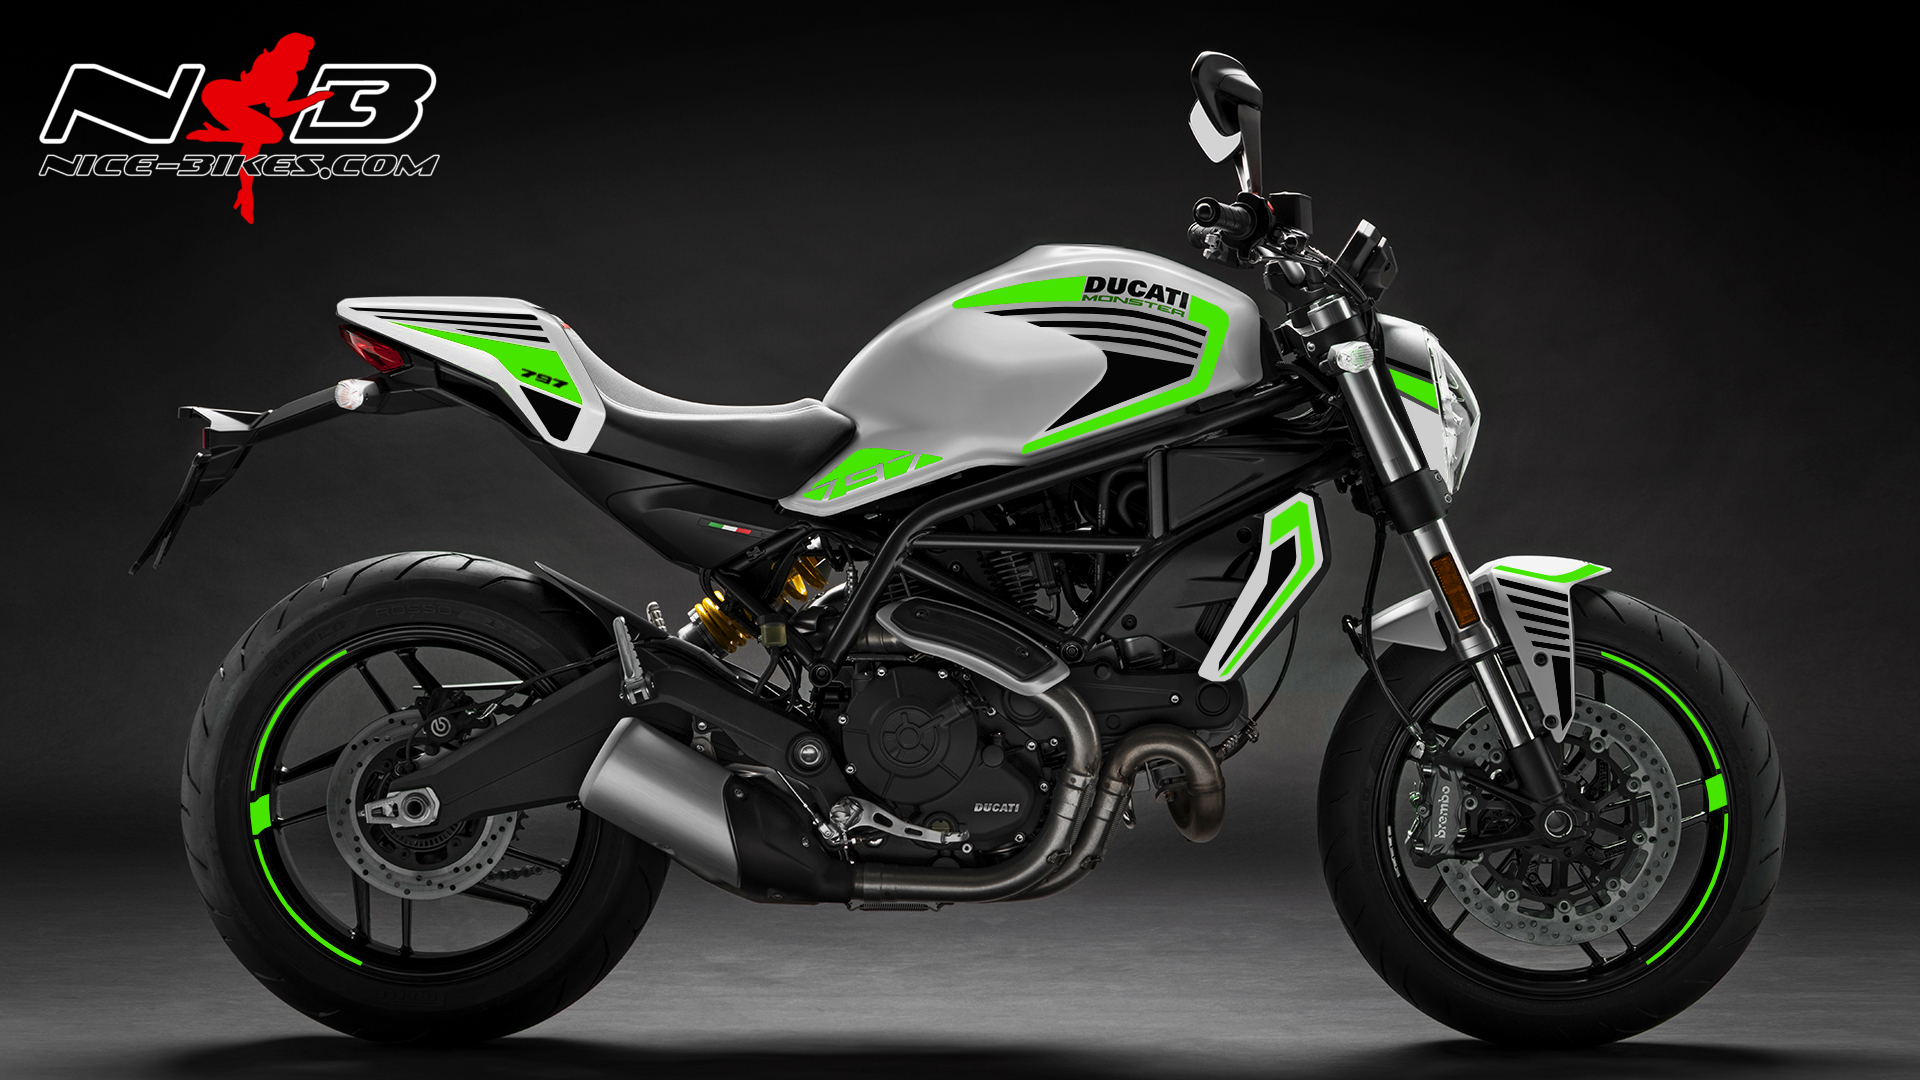 Foliendesign DUCATI  Monster 797 Bj. 2020 Lime Green